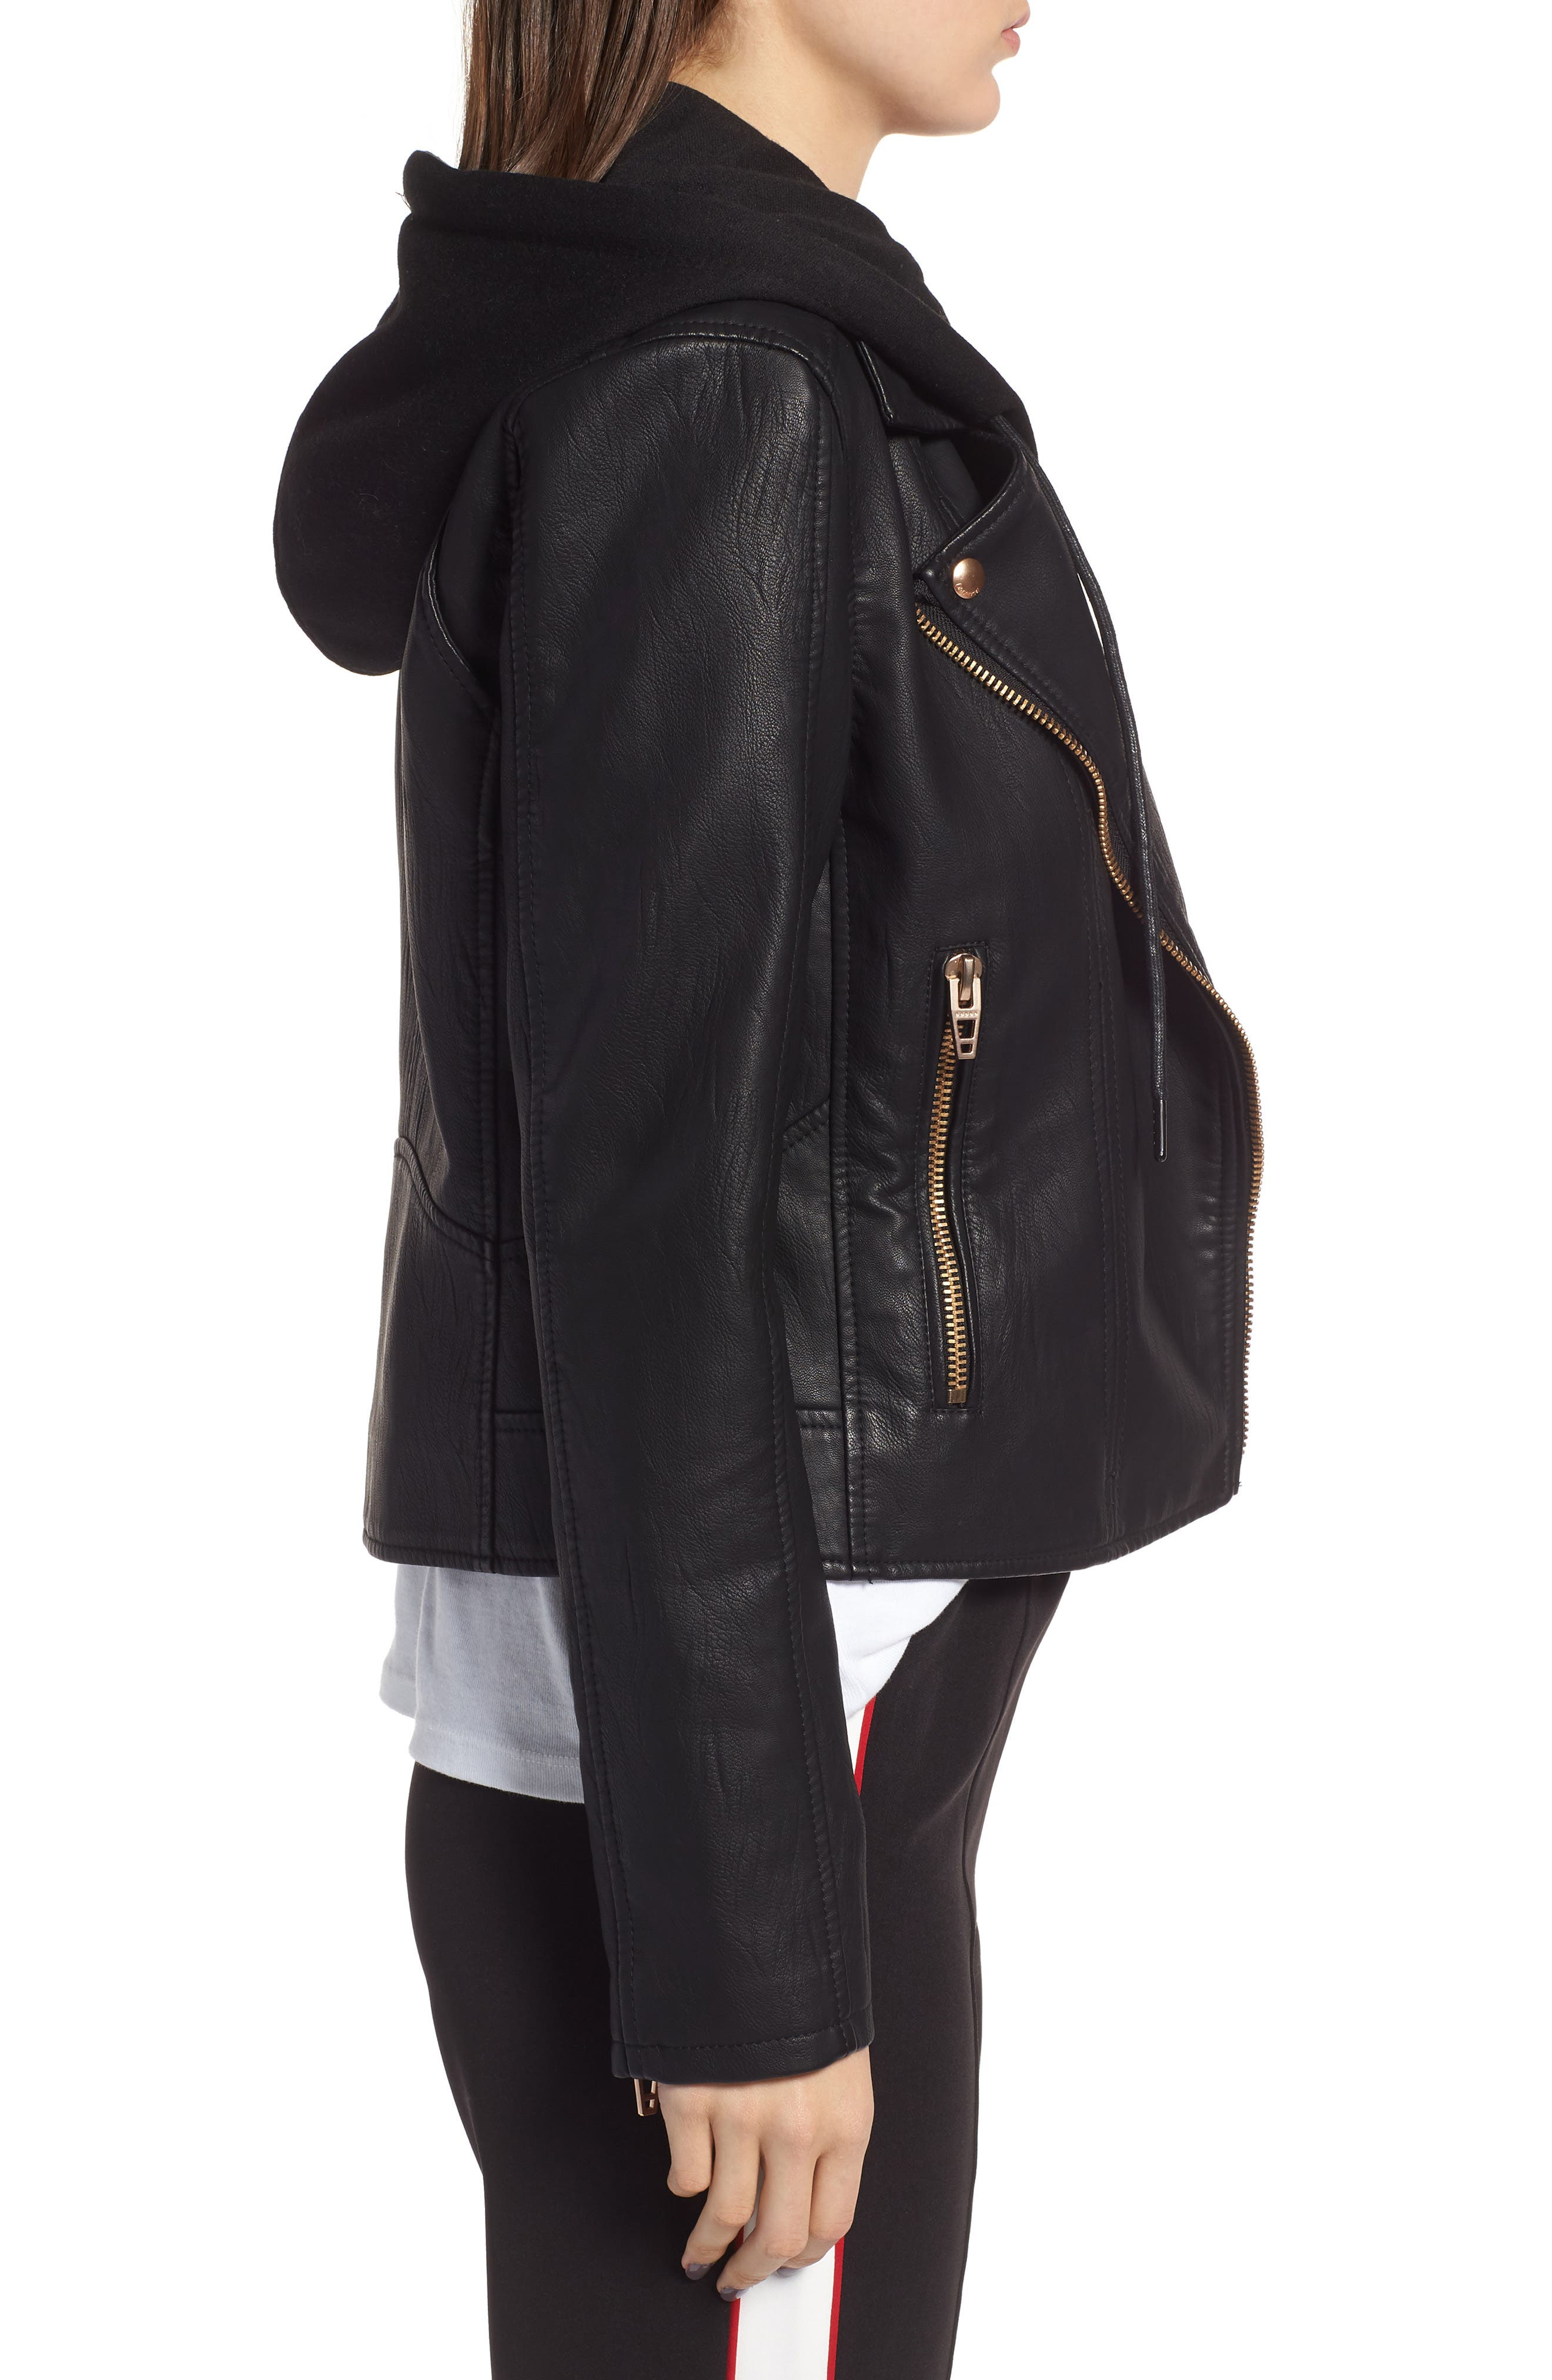 BLANKNYC, Meant to Be Moto Jacket with Removable Hood, Alternate thumbnail 4, color, BLACK